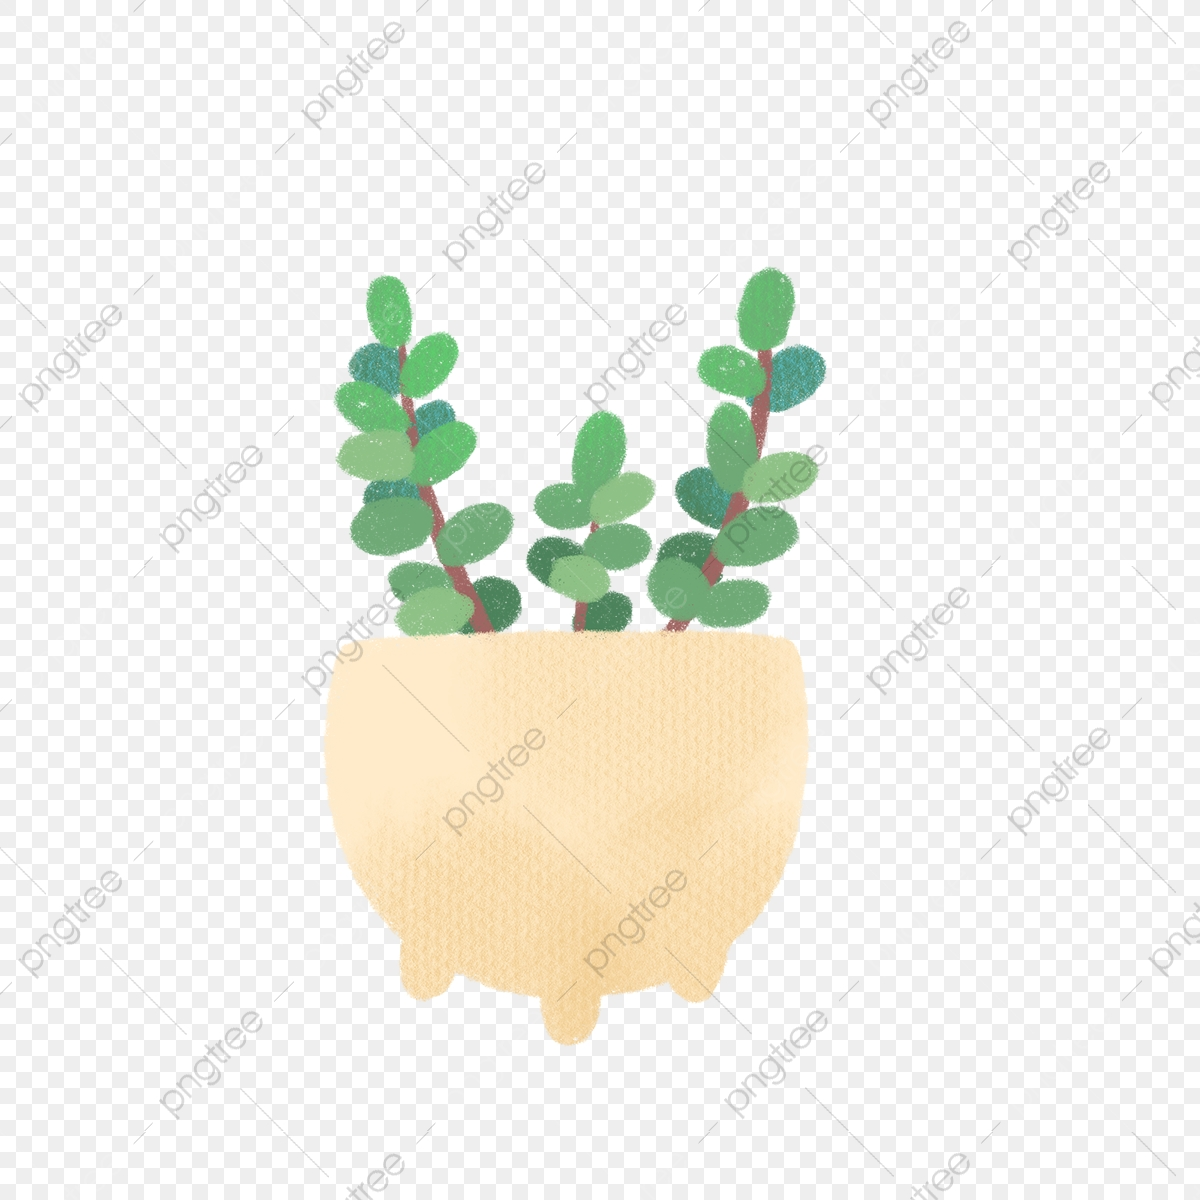 Succulent clipart round. Hand drawn succulents in